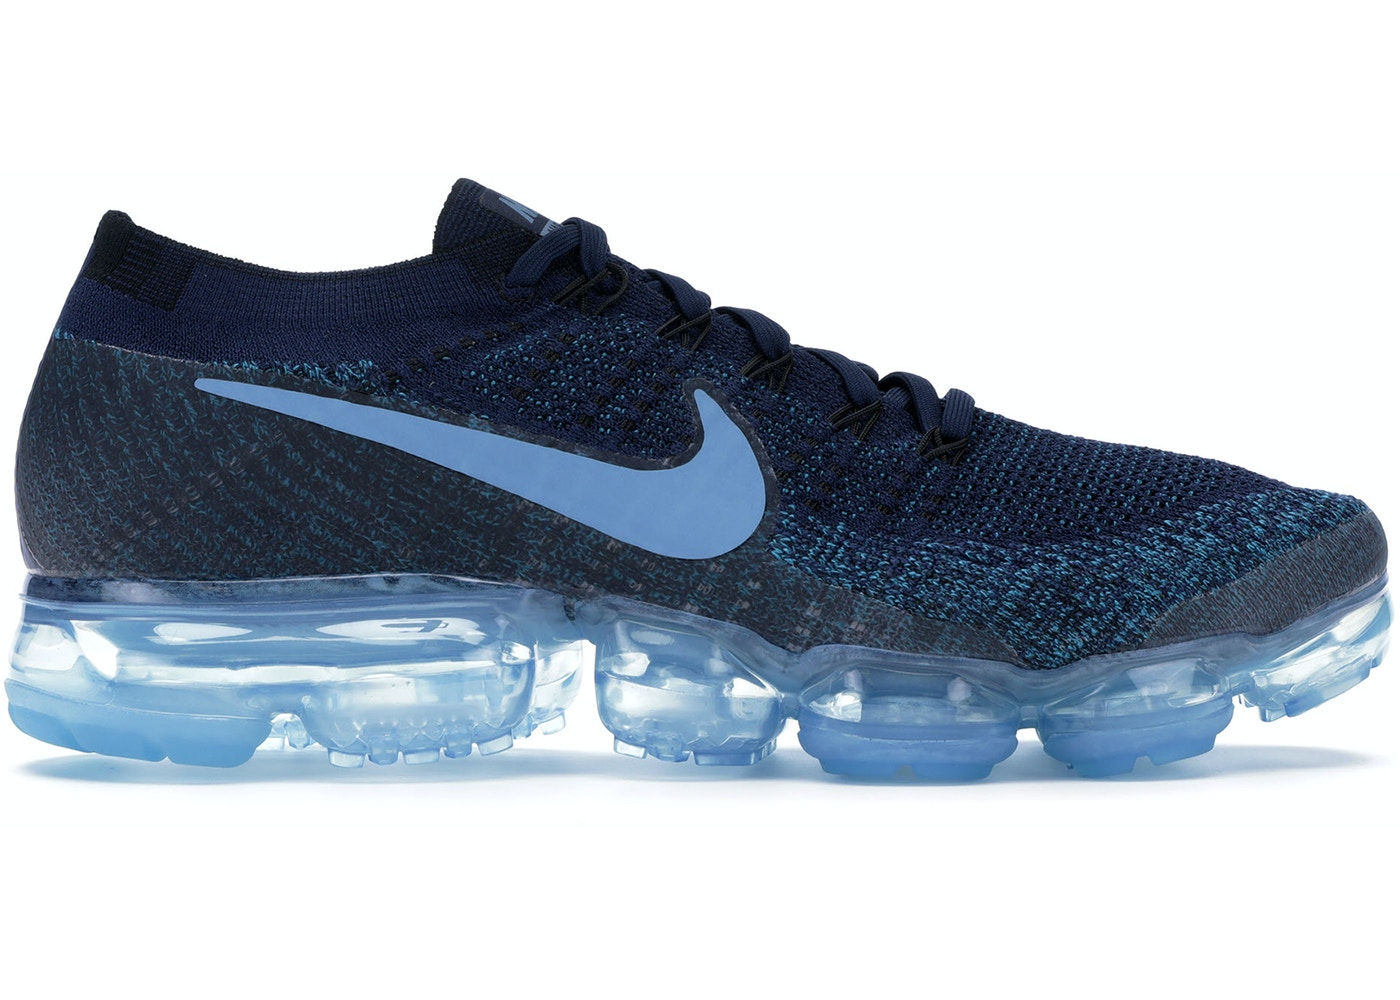 6f011f150b6ae4 Air VaporMax JD Sports Ice Blue - 849558-405